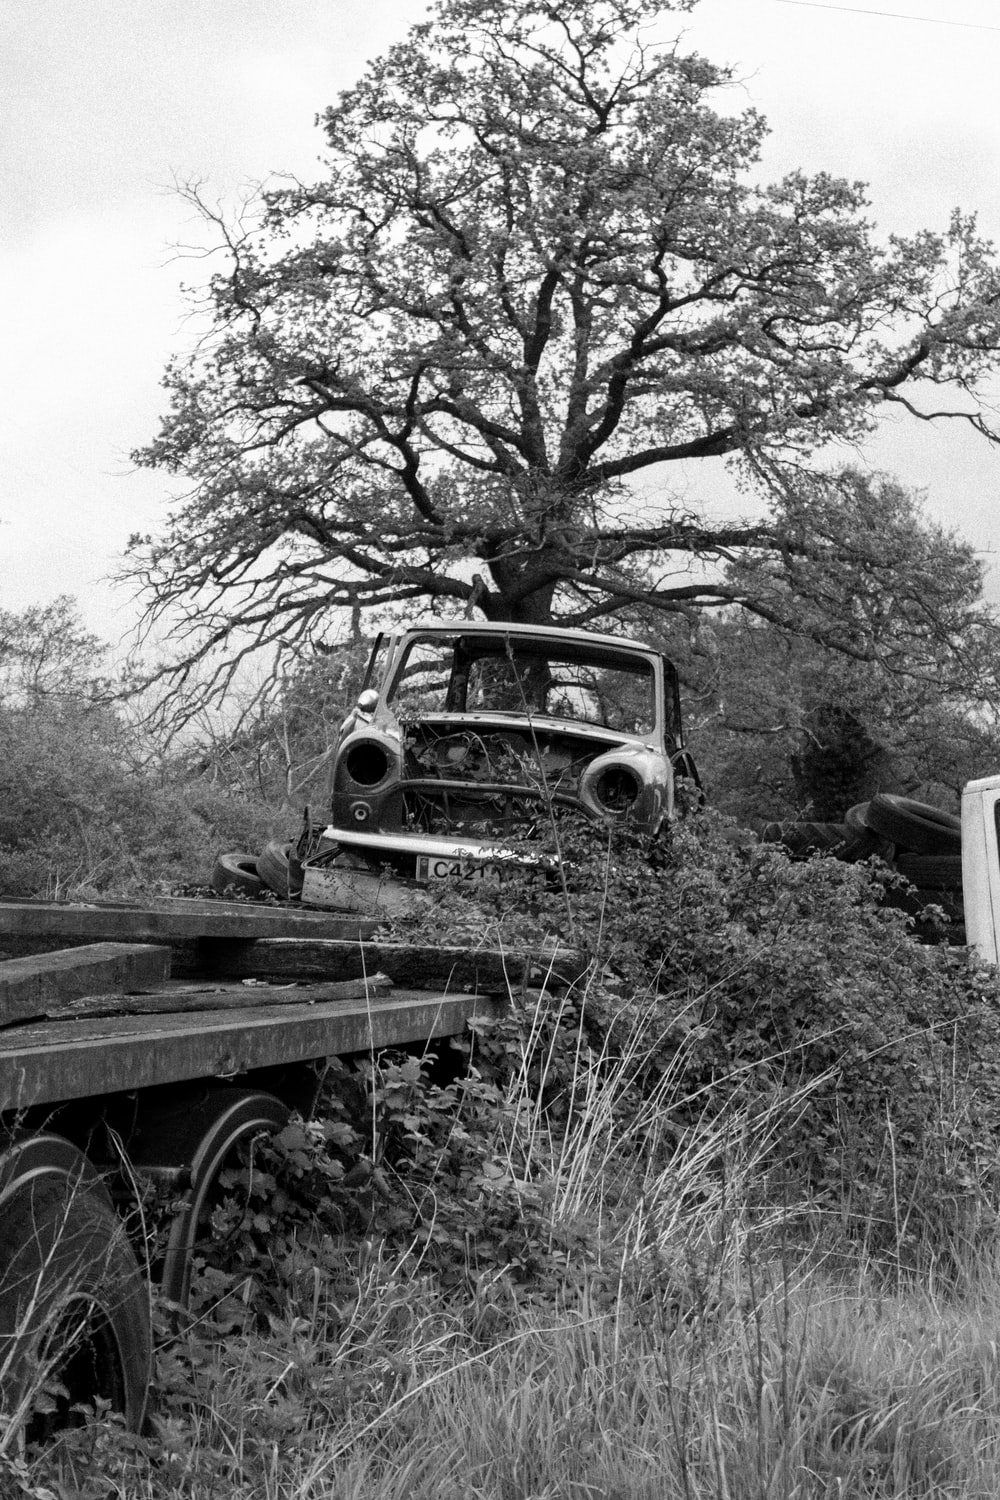 grayscale photo of vintage car in the middle of the forest